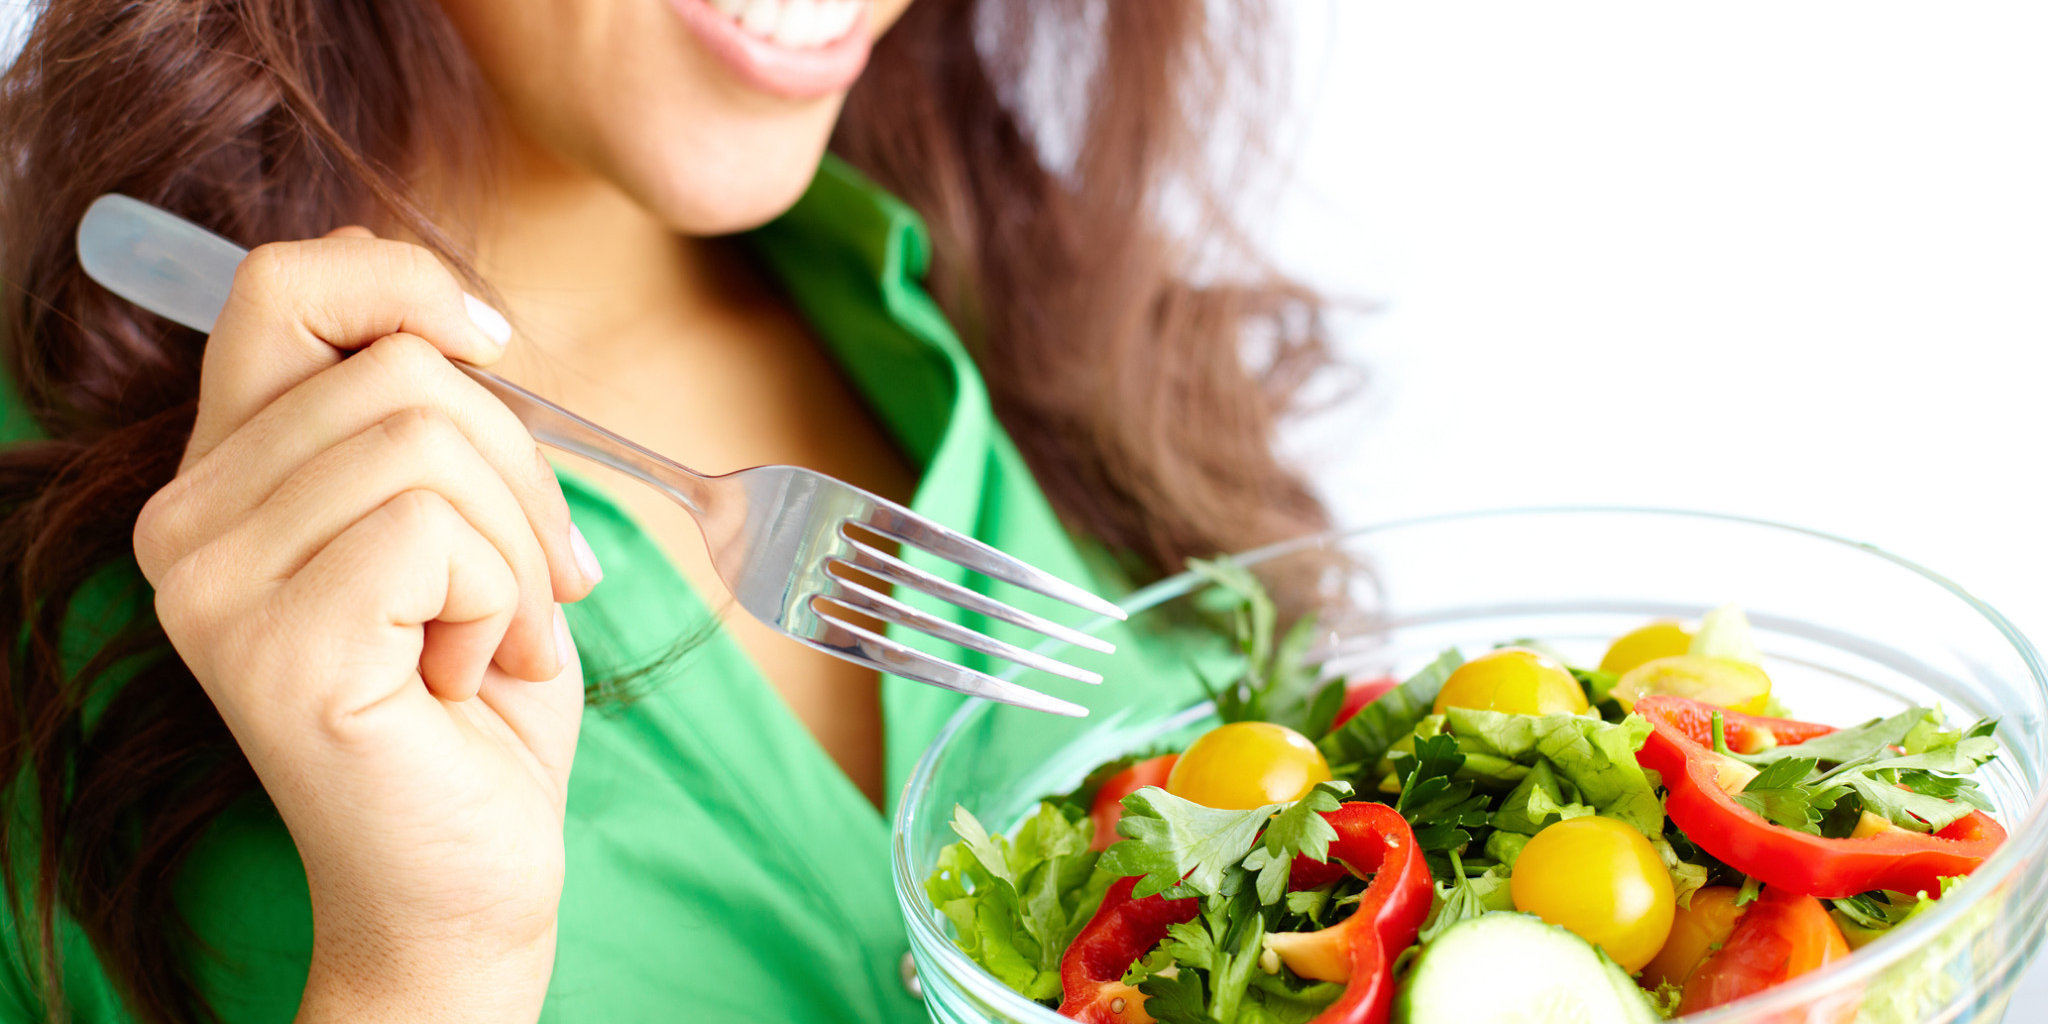 Maintaining your weight with vegetables and fruits